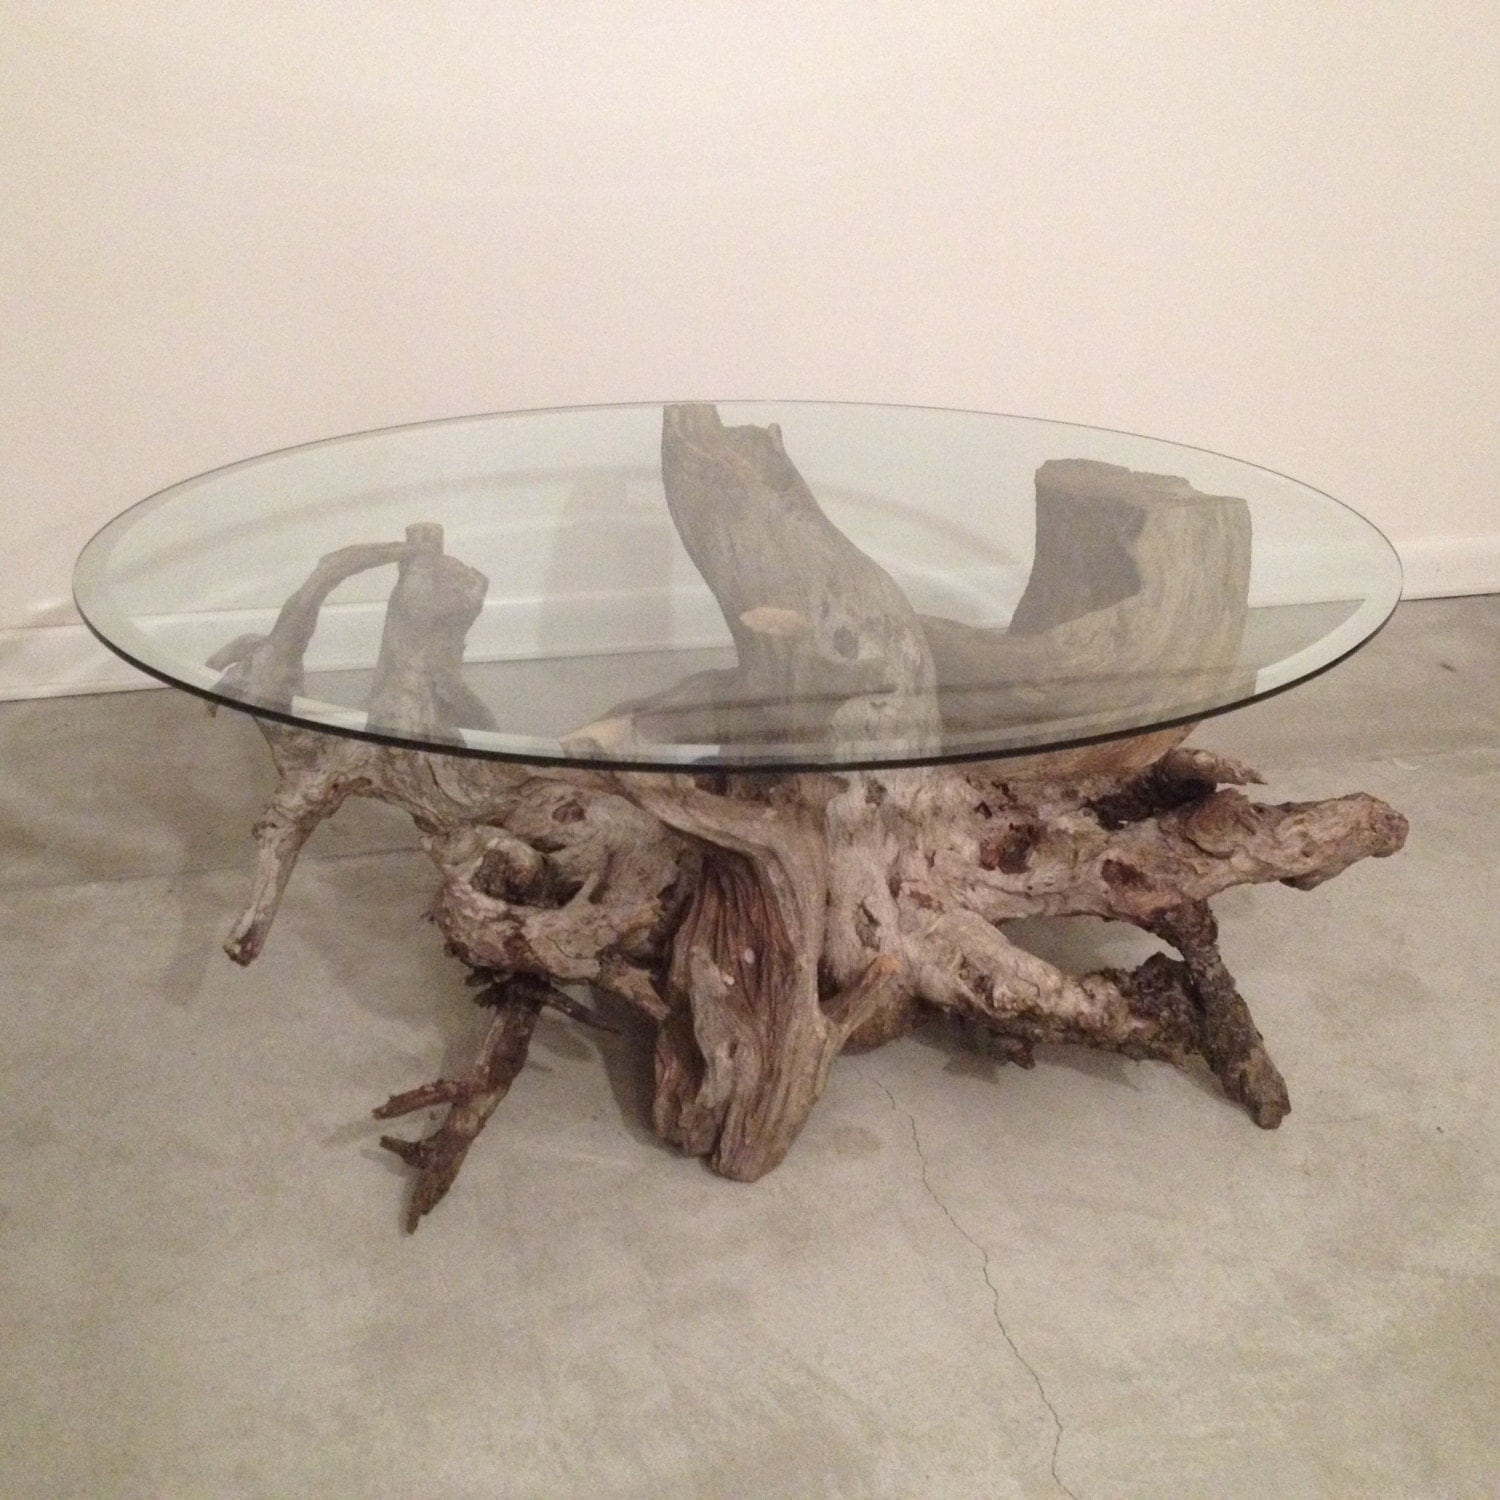 driftwood coffee table style 4 handmade from reclaimed. Black Bedroom Furniture Sets. Home Design Ideas